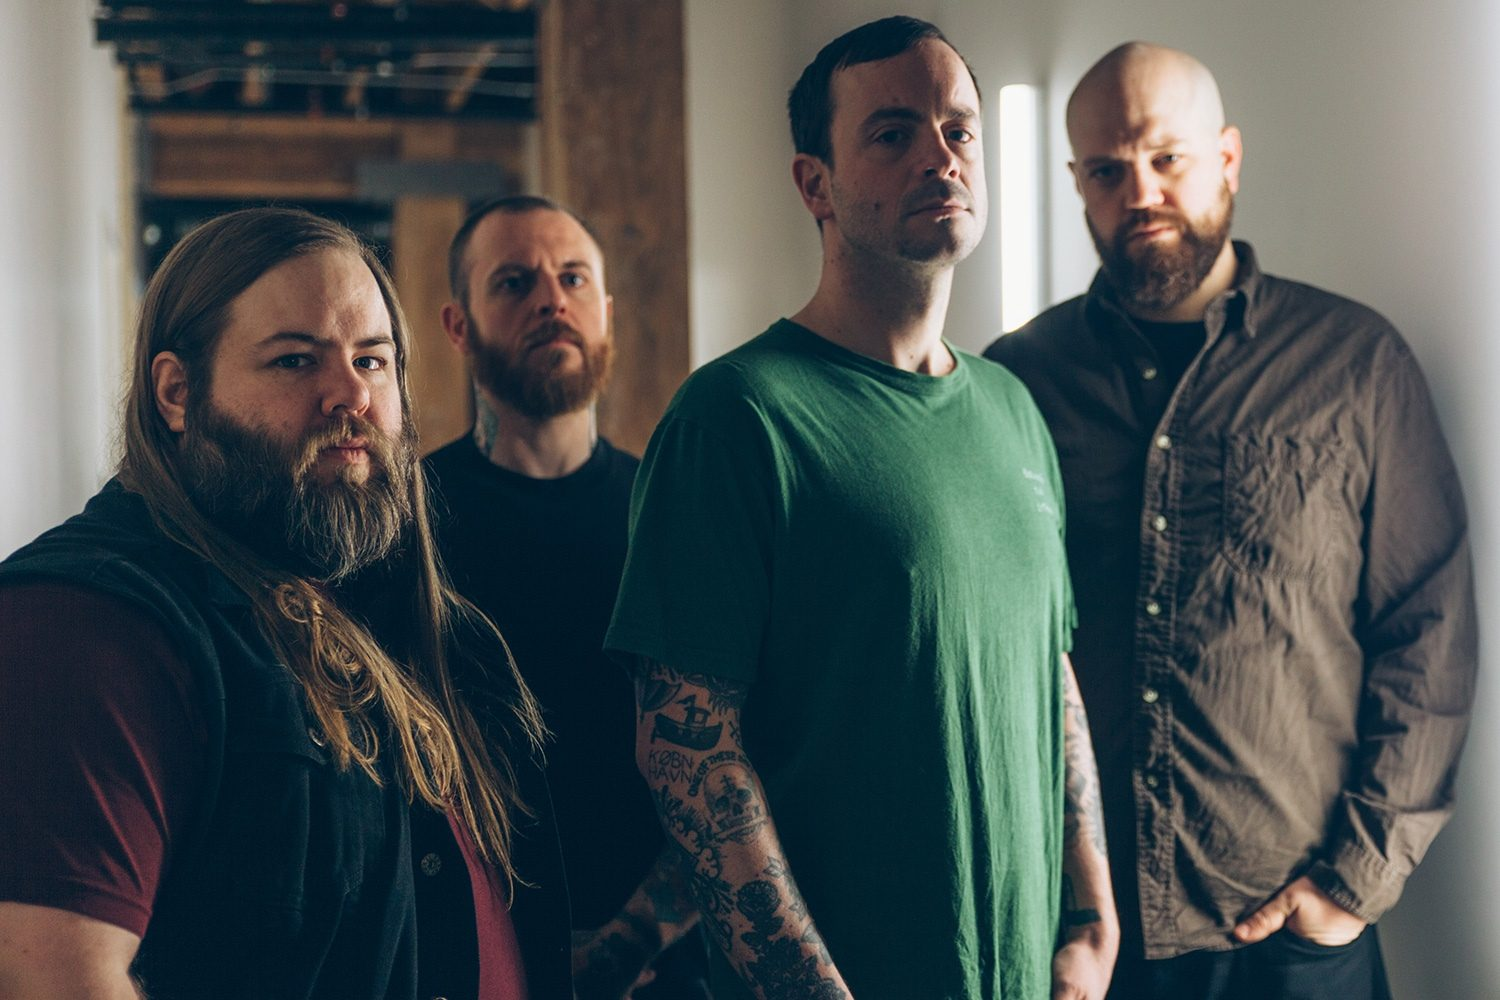 Cancer Bats have released a new song ahead of their upcoming UK tour